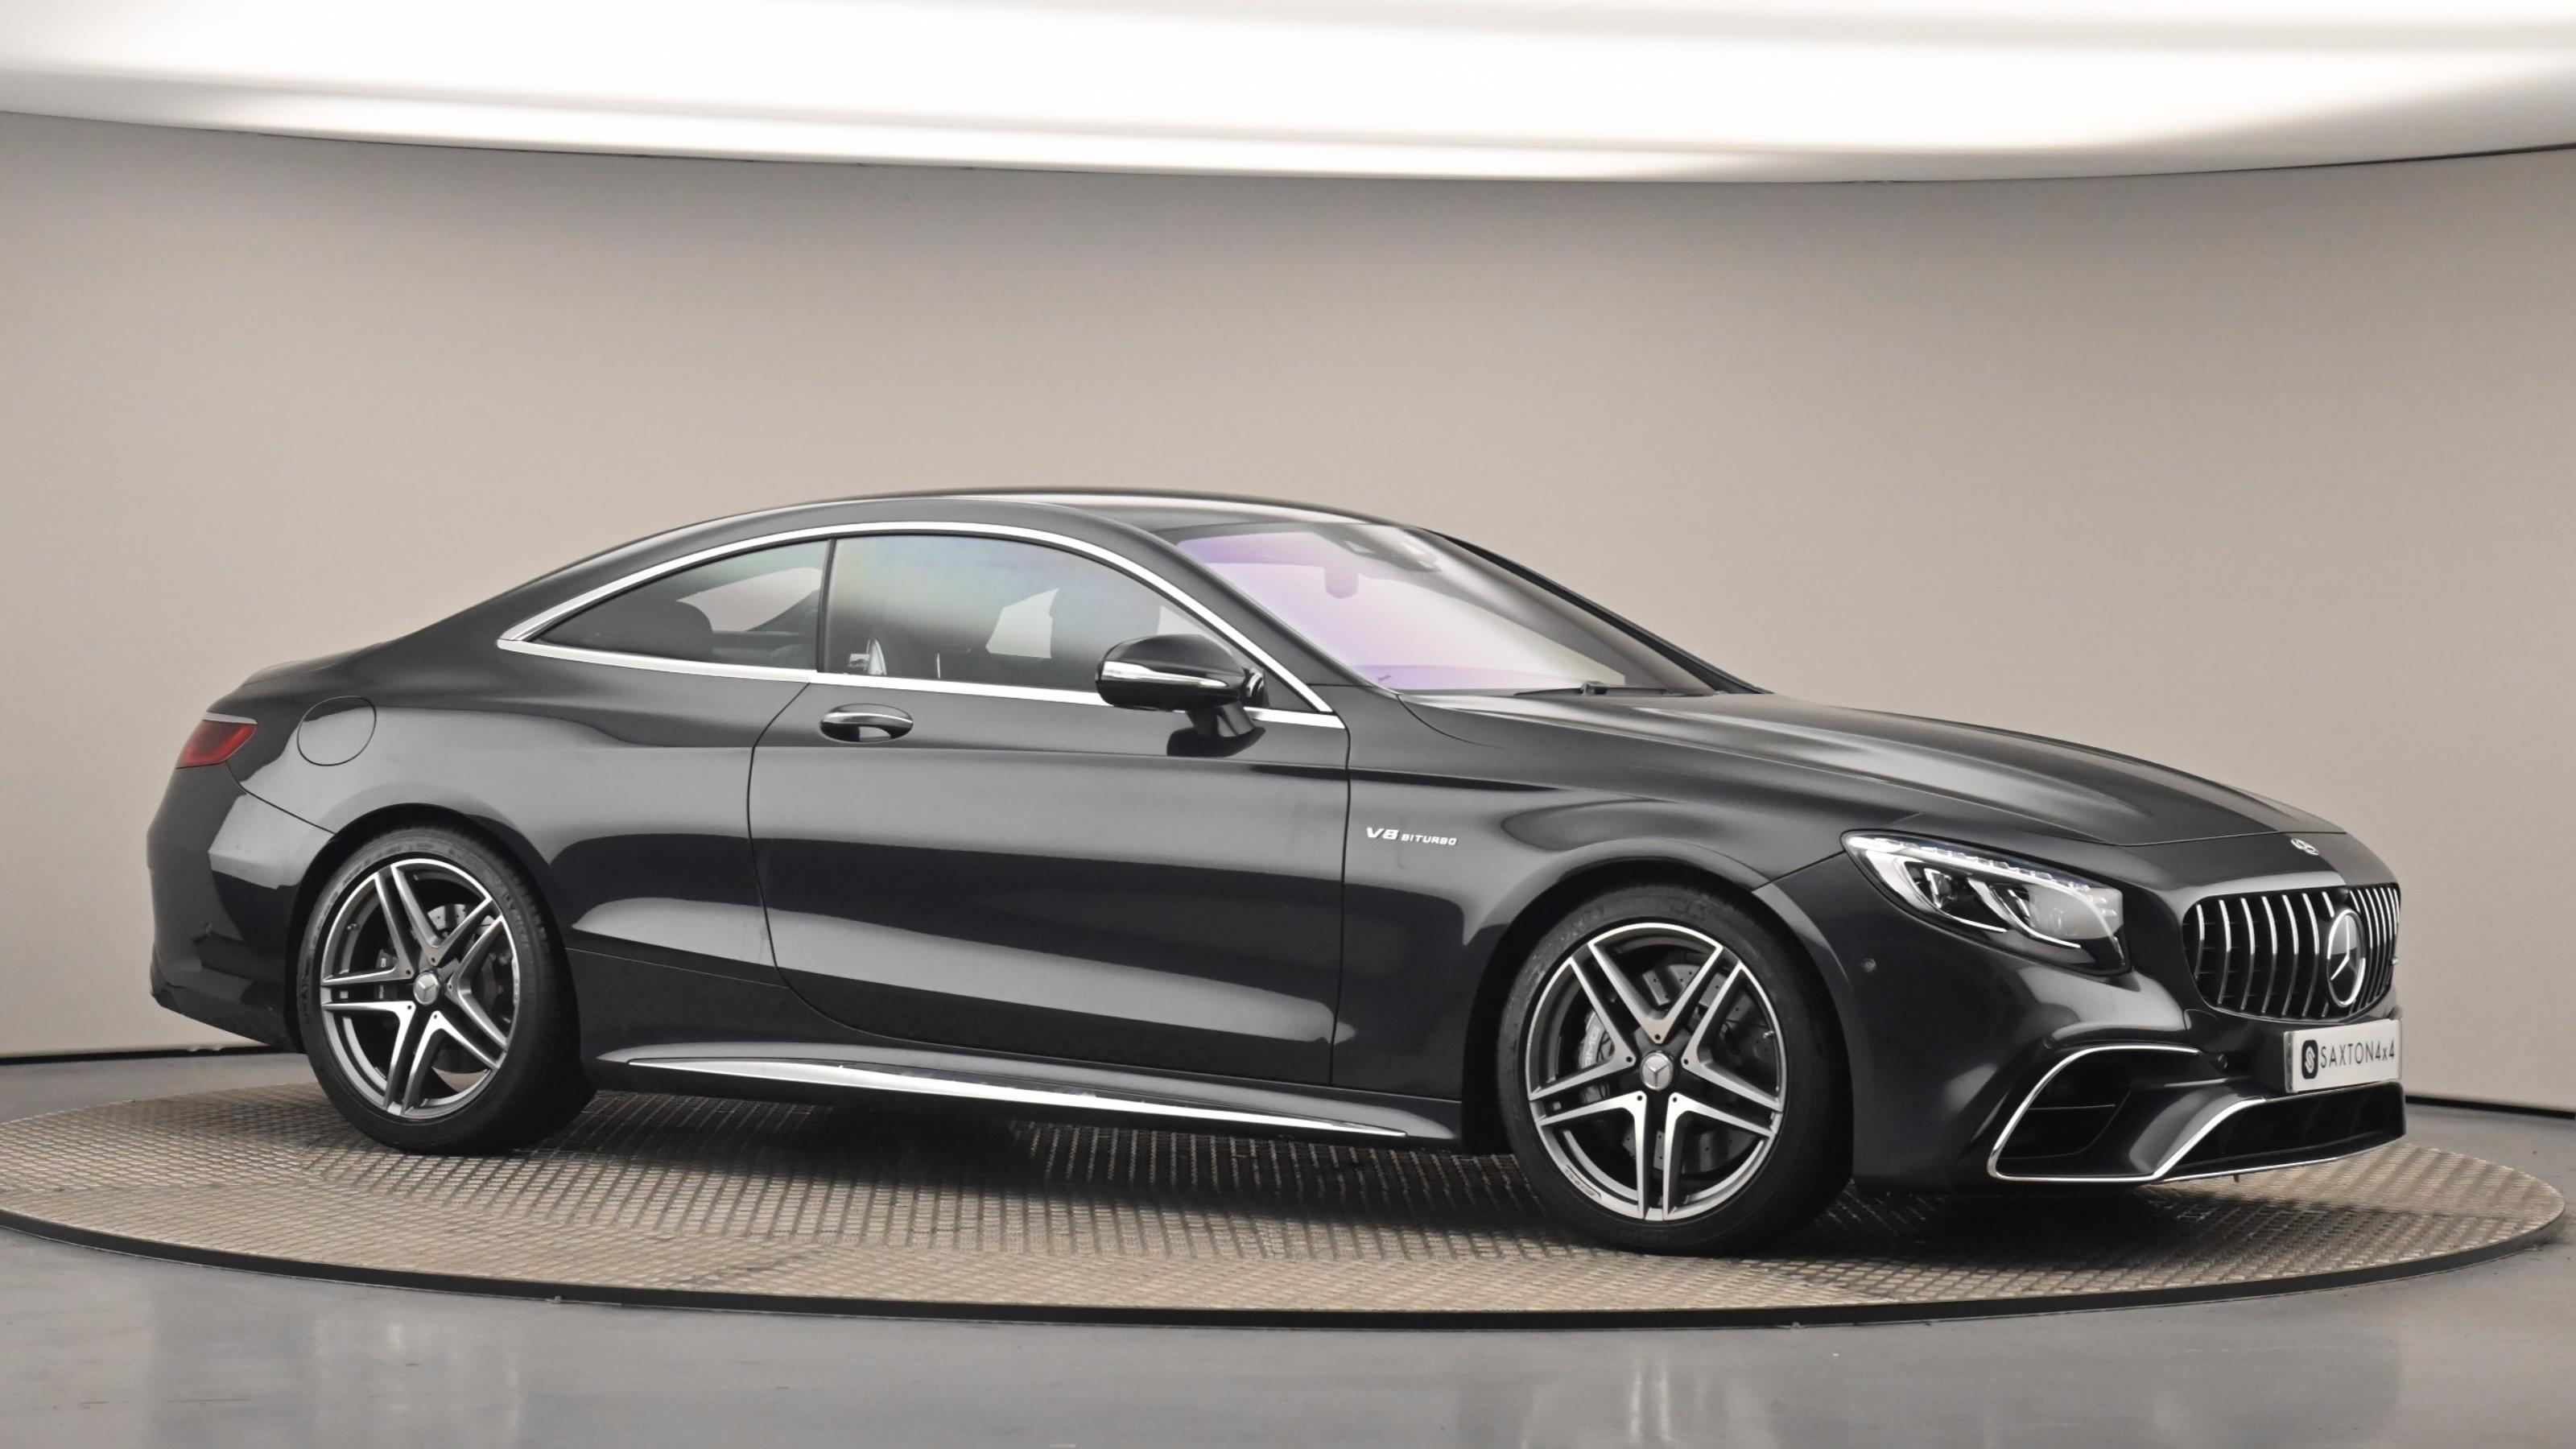 Used 2018 Mercedes-Benz S CLASS AMG S63 [612] 2dr MCT BLACK at Saxton4x4